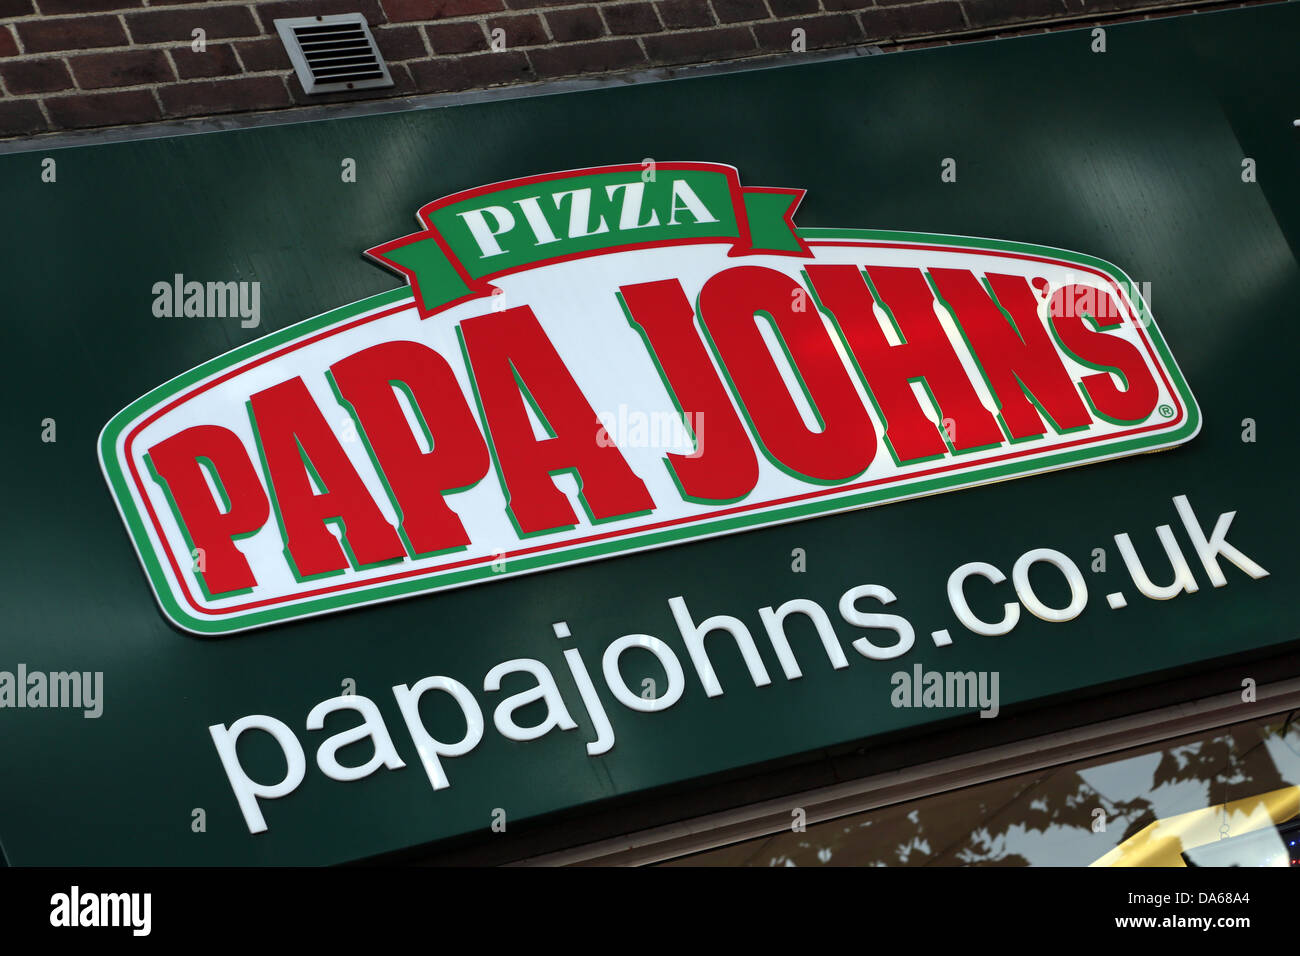 Morden London England Pizza Papa John's Restaurant Stockbild